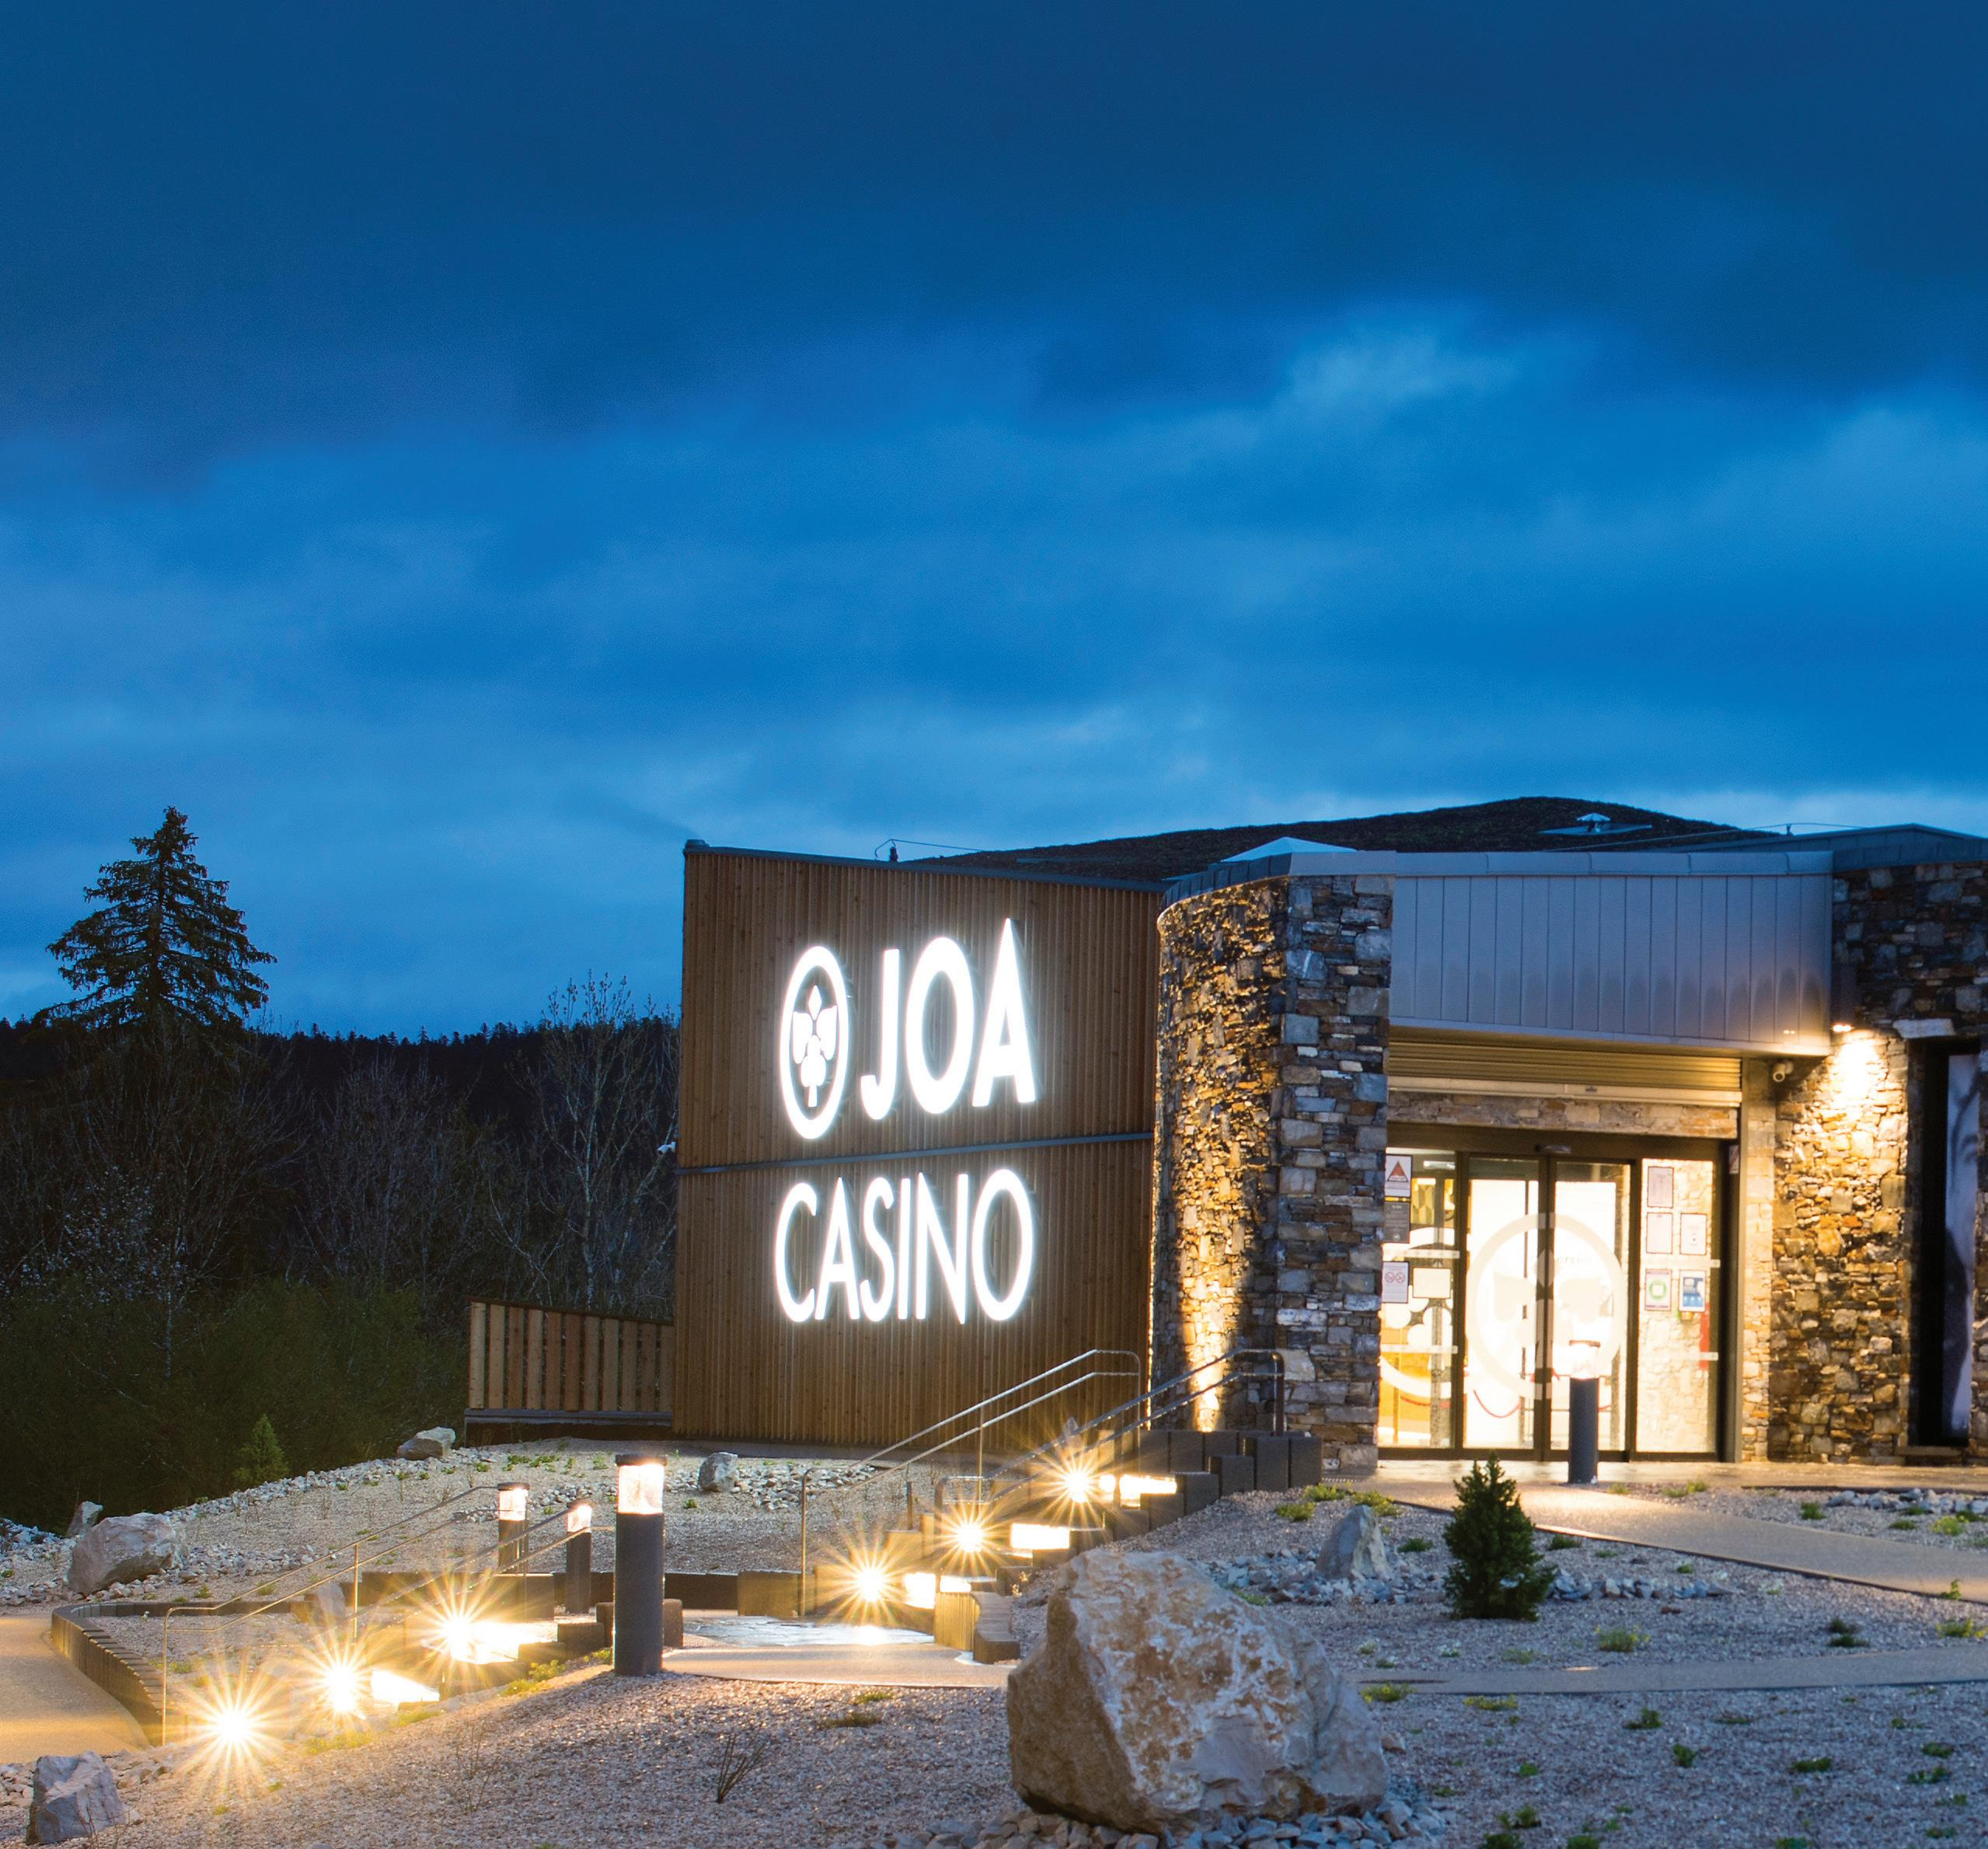 Page 28 of A 33rd Casino for the JOA Group in the Heart of Haut-Jura